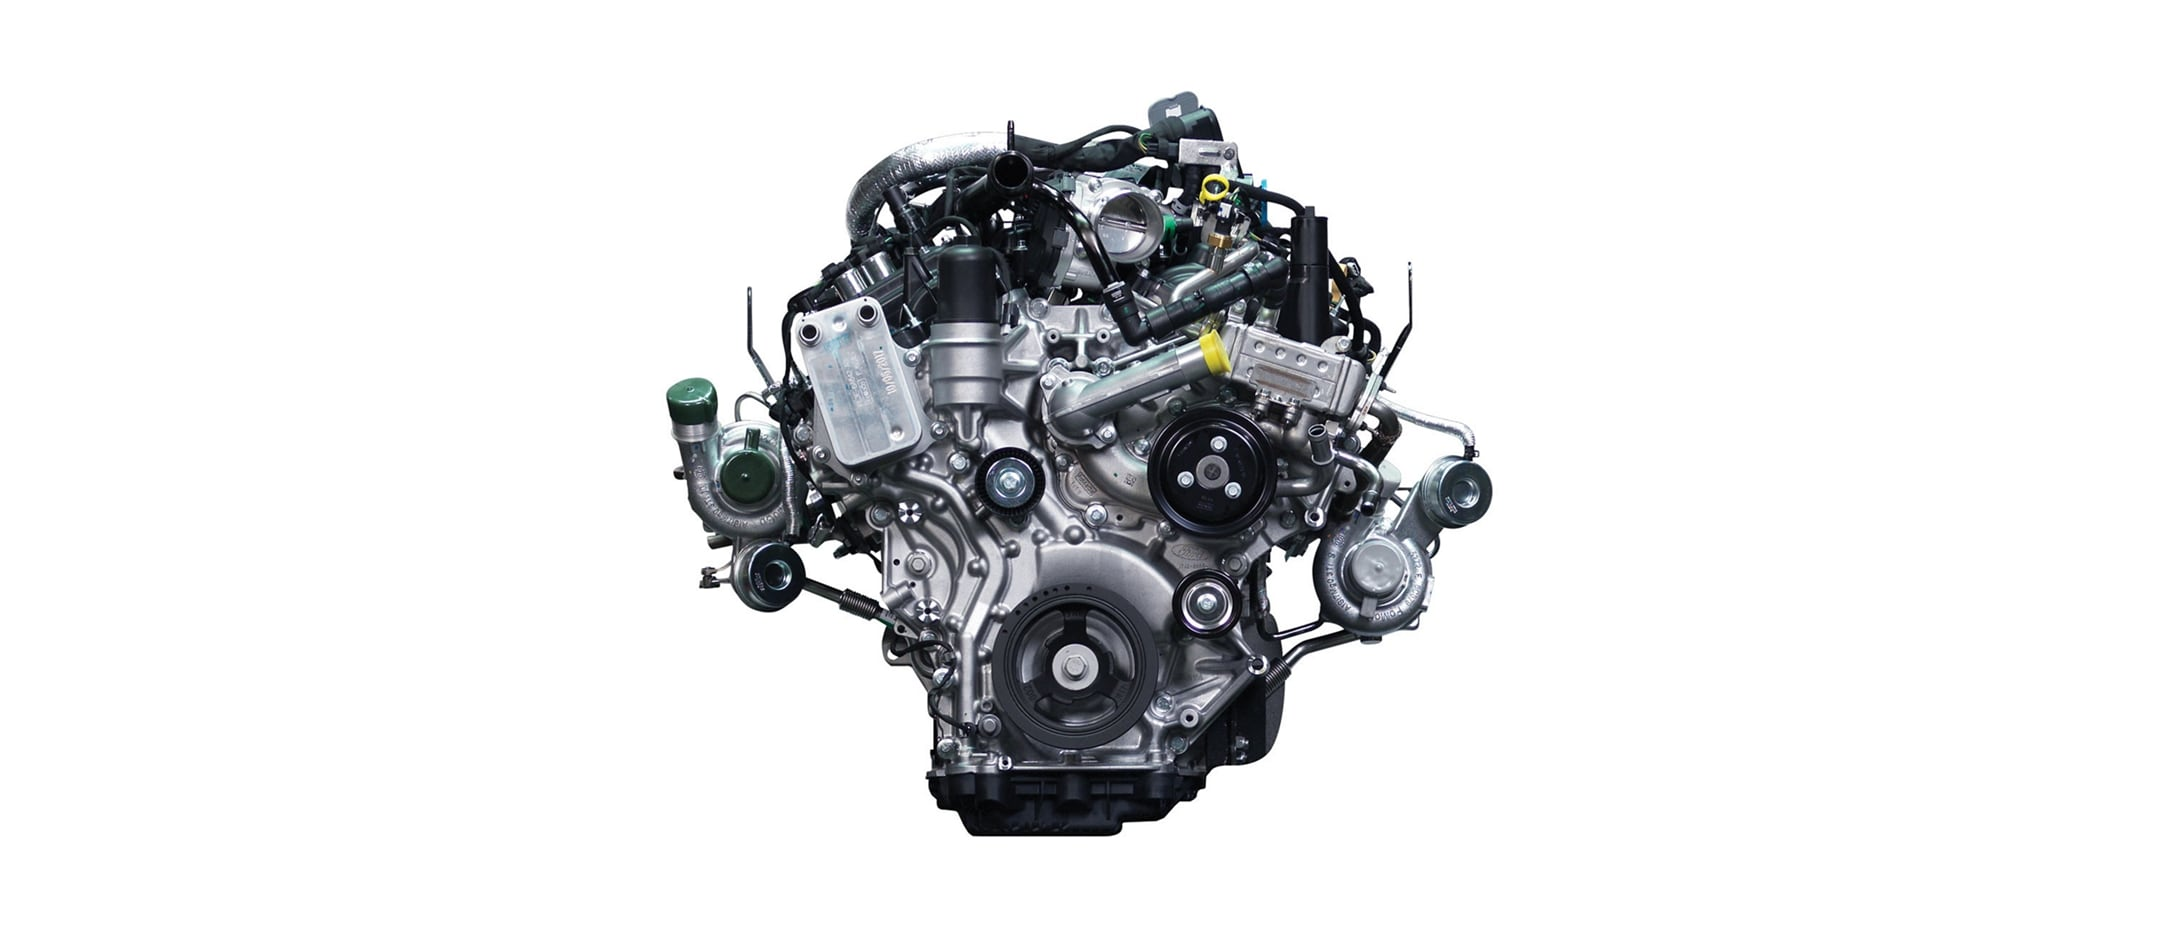 2.7L Turbocharged EcoBoost V6 Ford F150 Engine